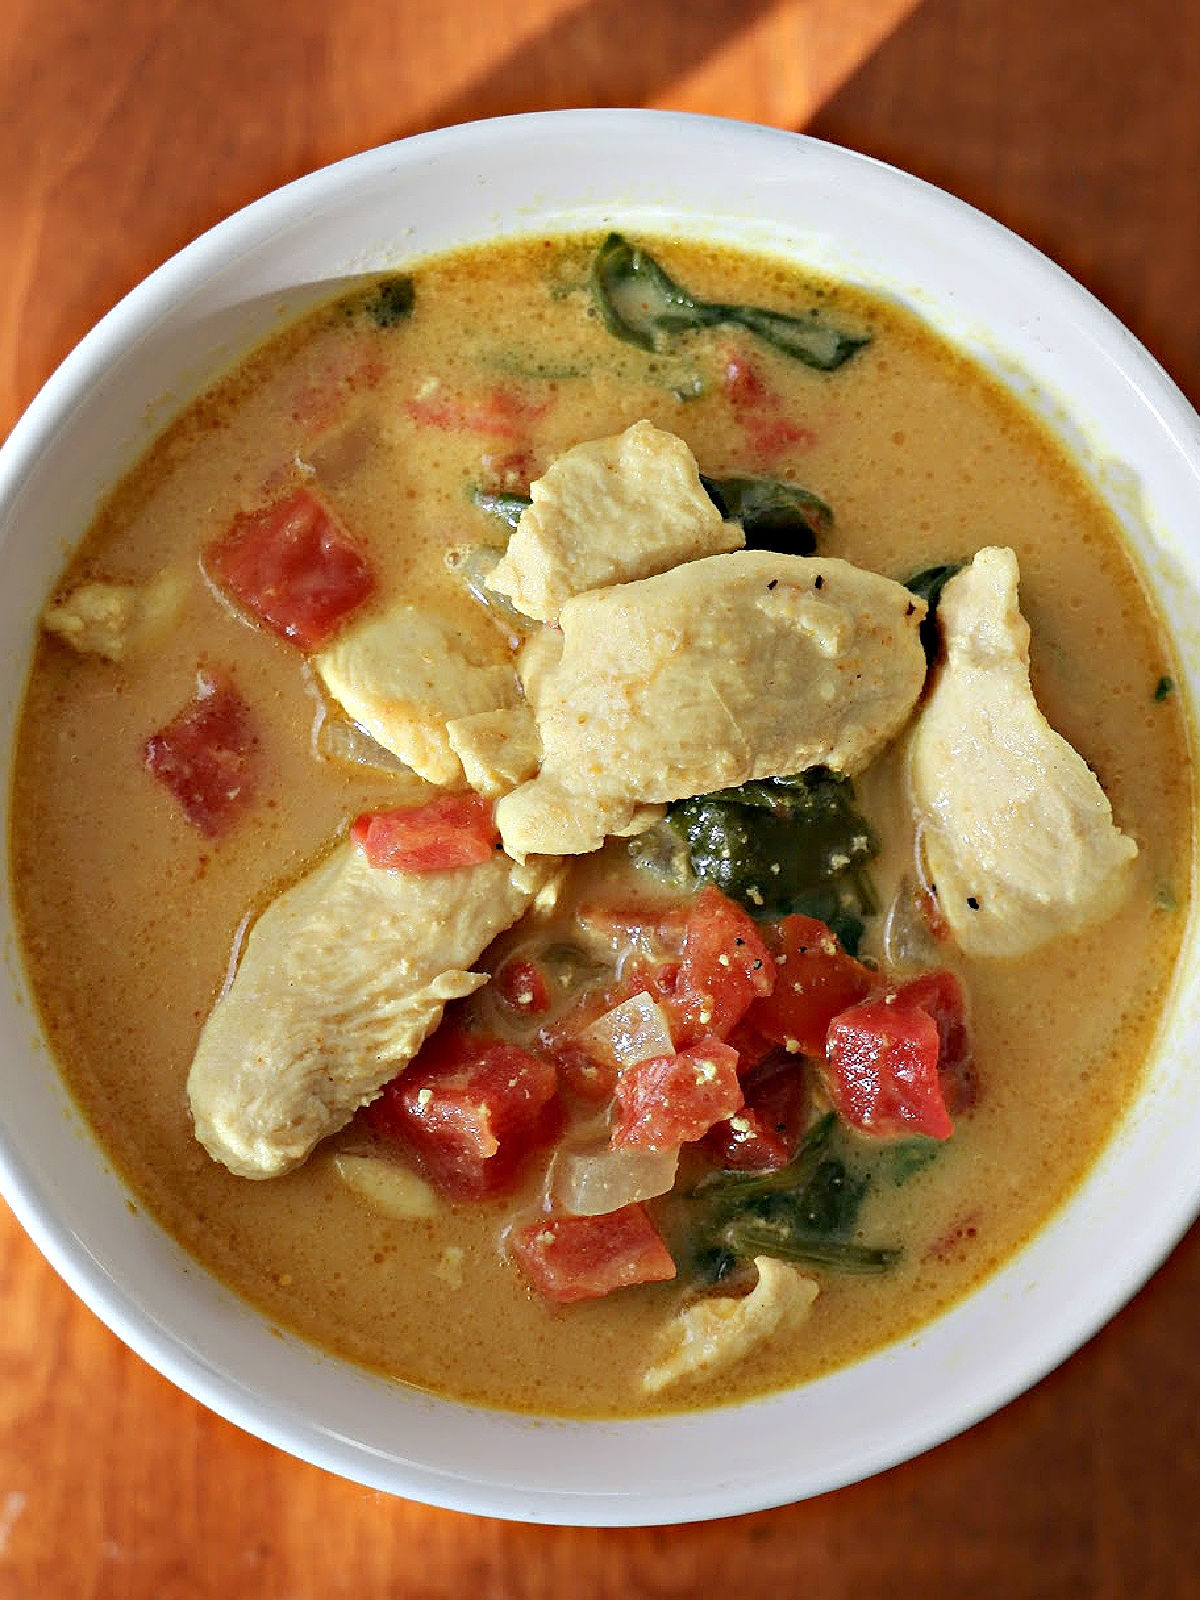 Bowl of chicken curry soup with spinach, tomatoes, and a coconut milk broth.